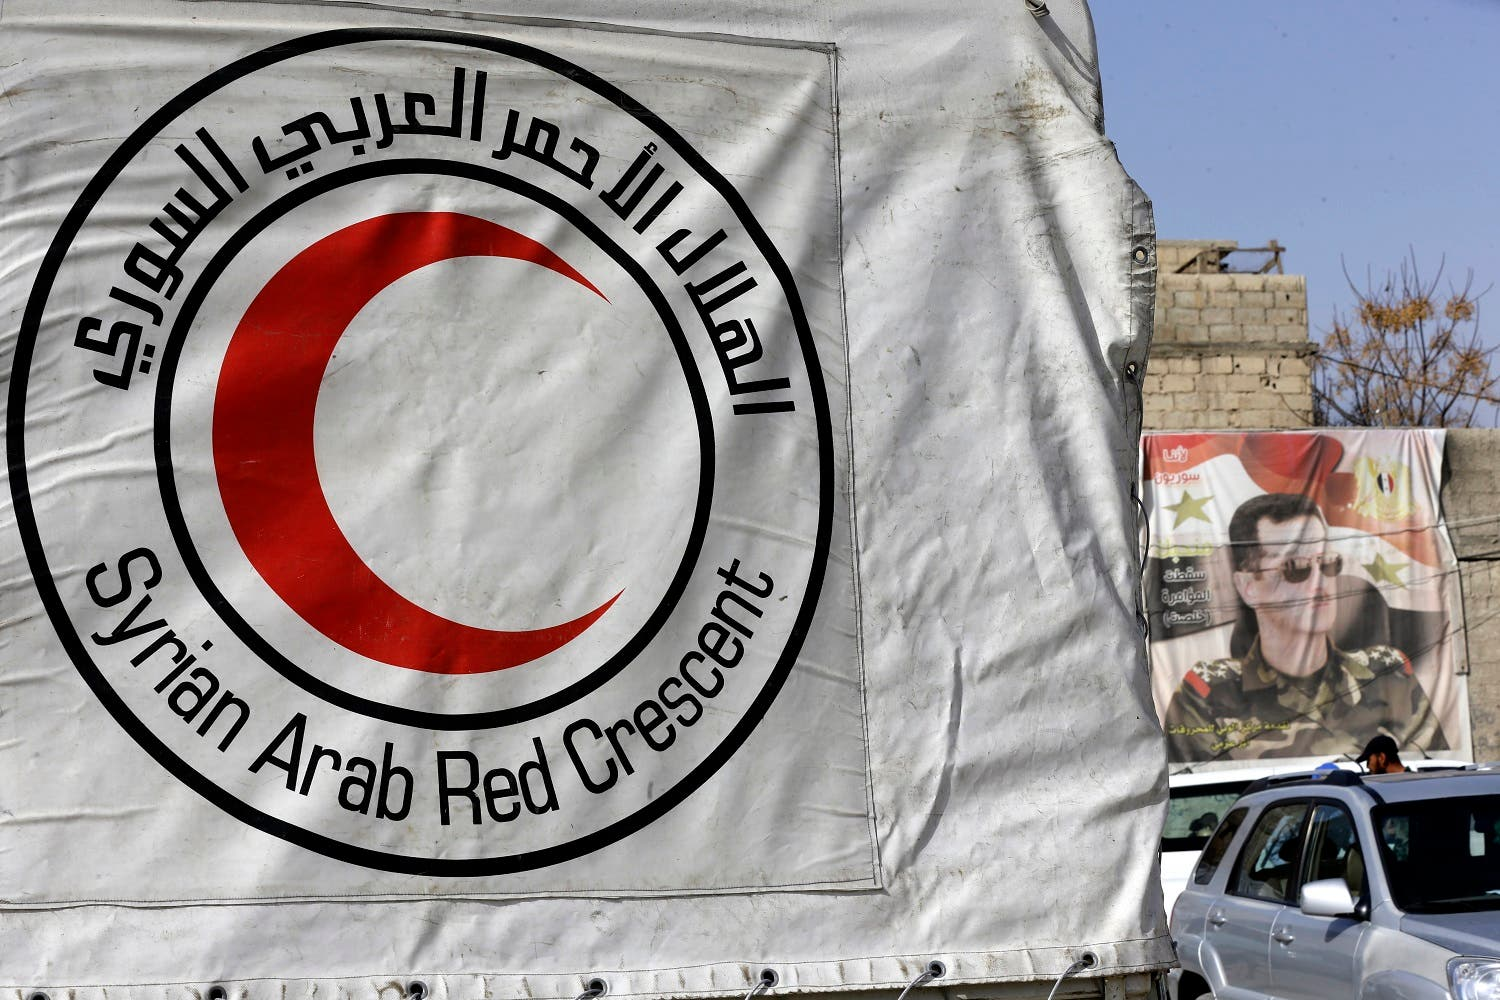 Syrian Arab Red Crescent vehicles carrying aid wait at a checkpoint on the outskirts of Damascus before delivering aid to the rebel-held enclave on March 5, 2018. (AFP)